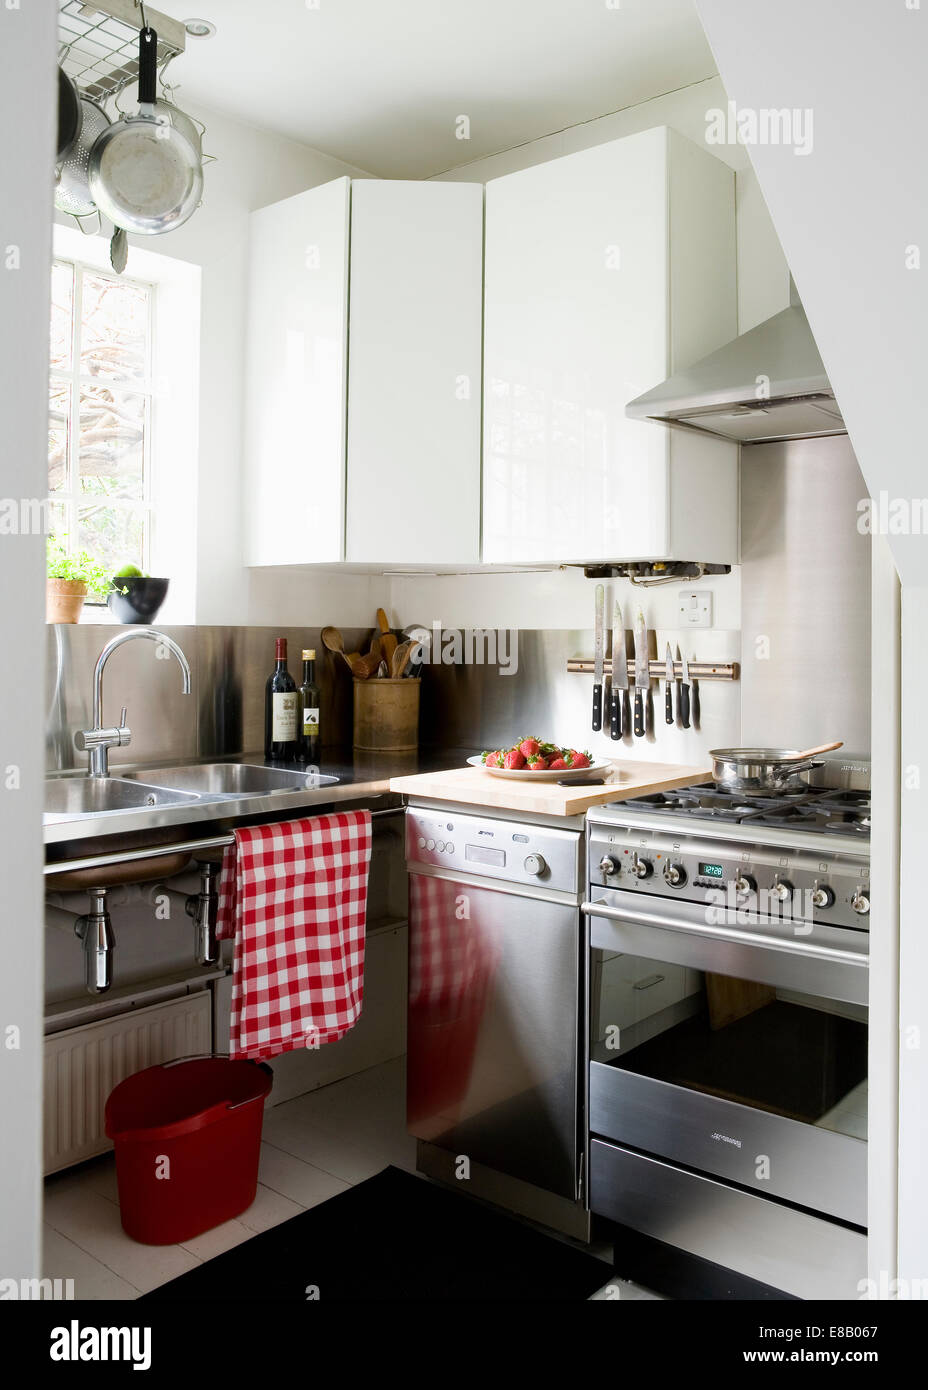 Small Stainless Steel Dishwasher Beside Stainless Steel Range Oven In  Modern White Urban Kitchen